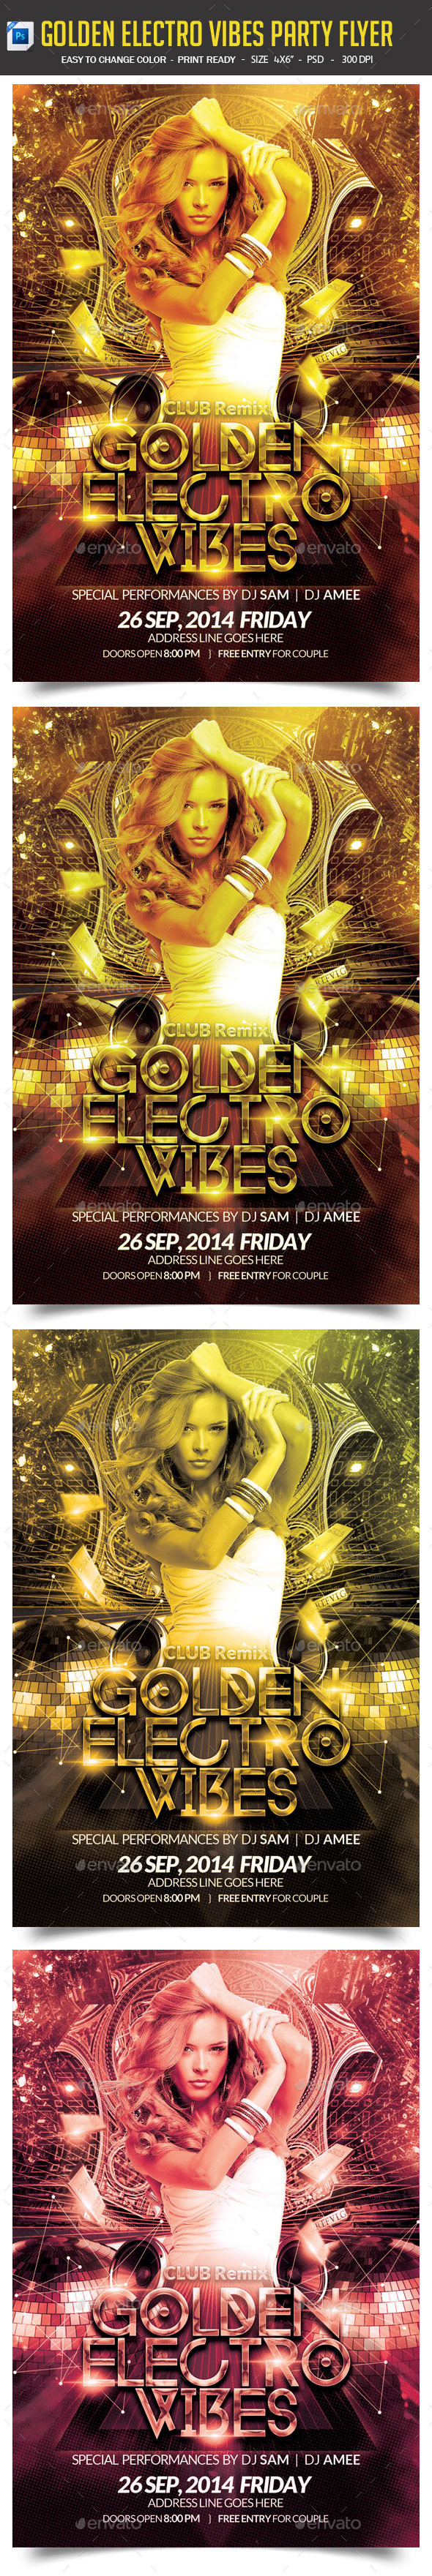 Golden Electro Vibes Party Flyer - Clubs & Parties Events